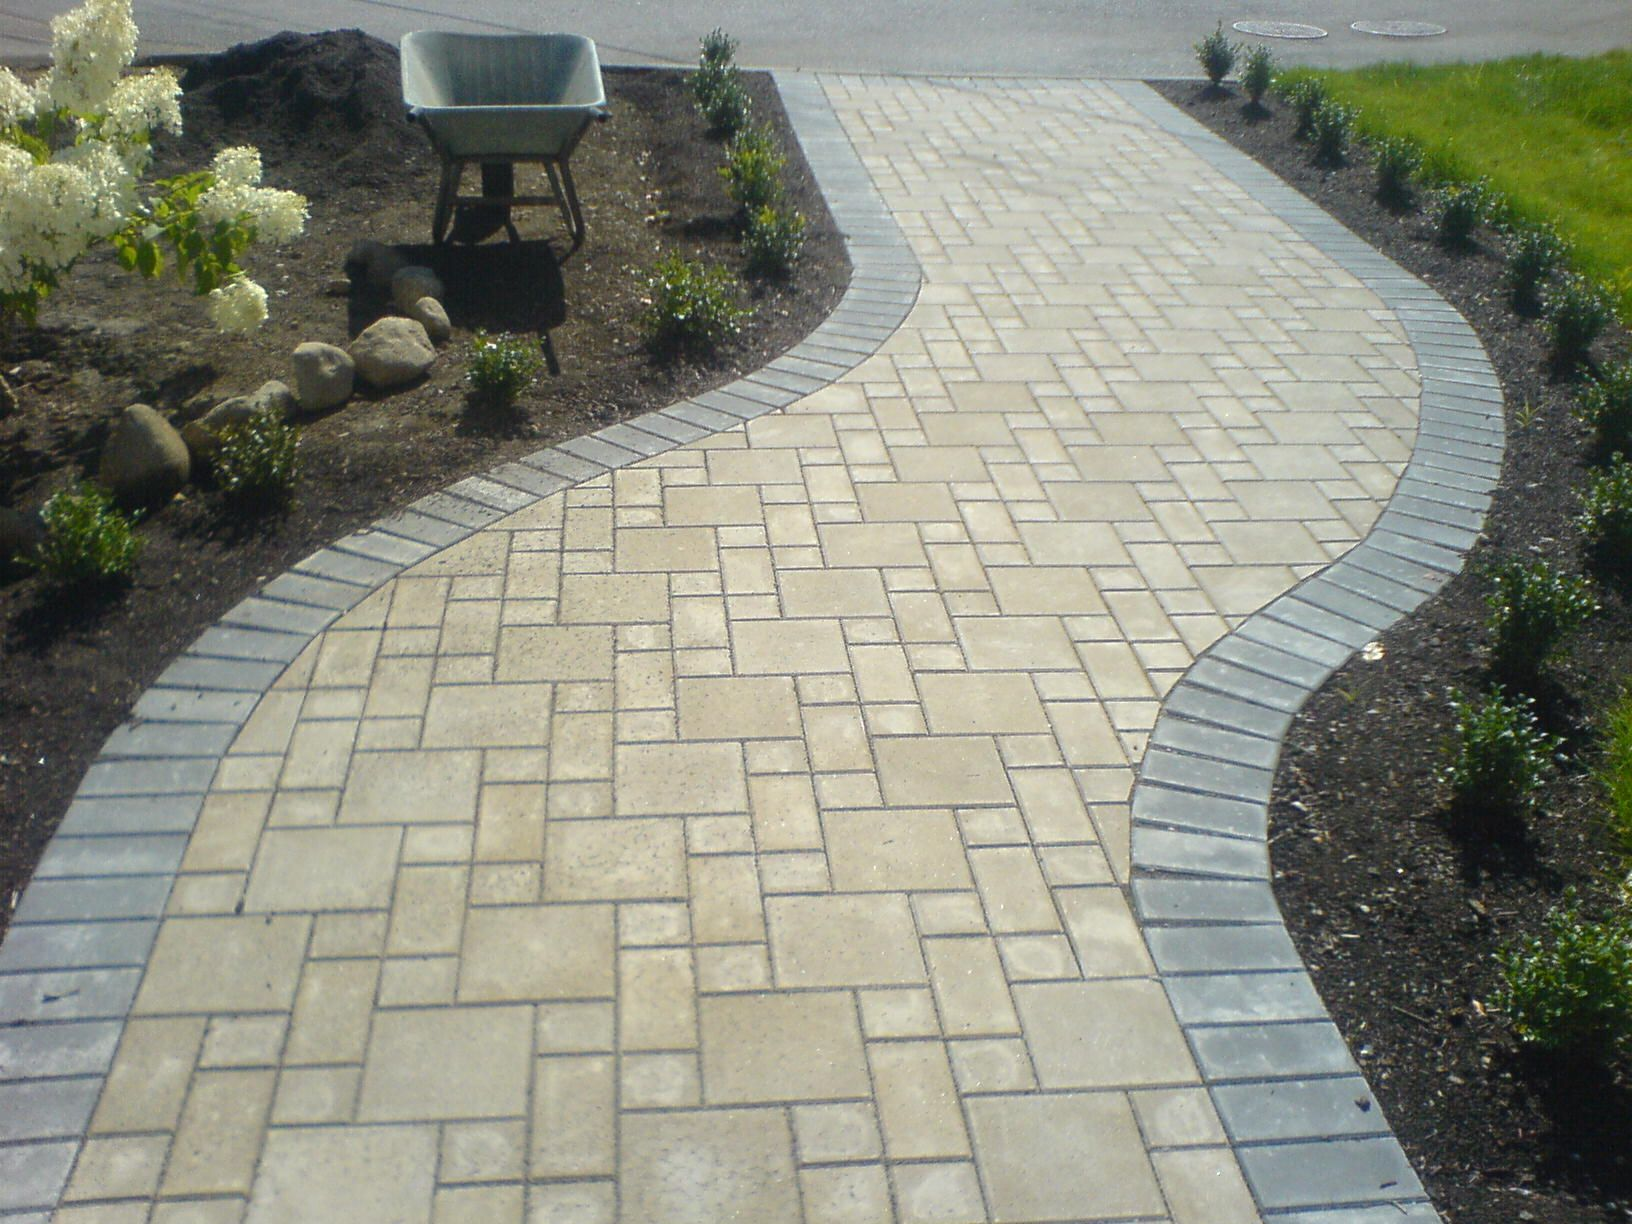 Paver stone patio designs paving stone patio for Paving stone garden designs